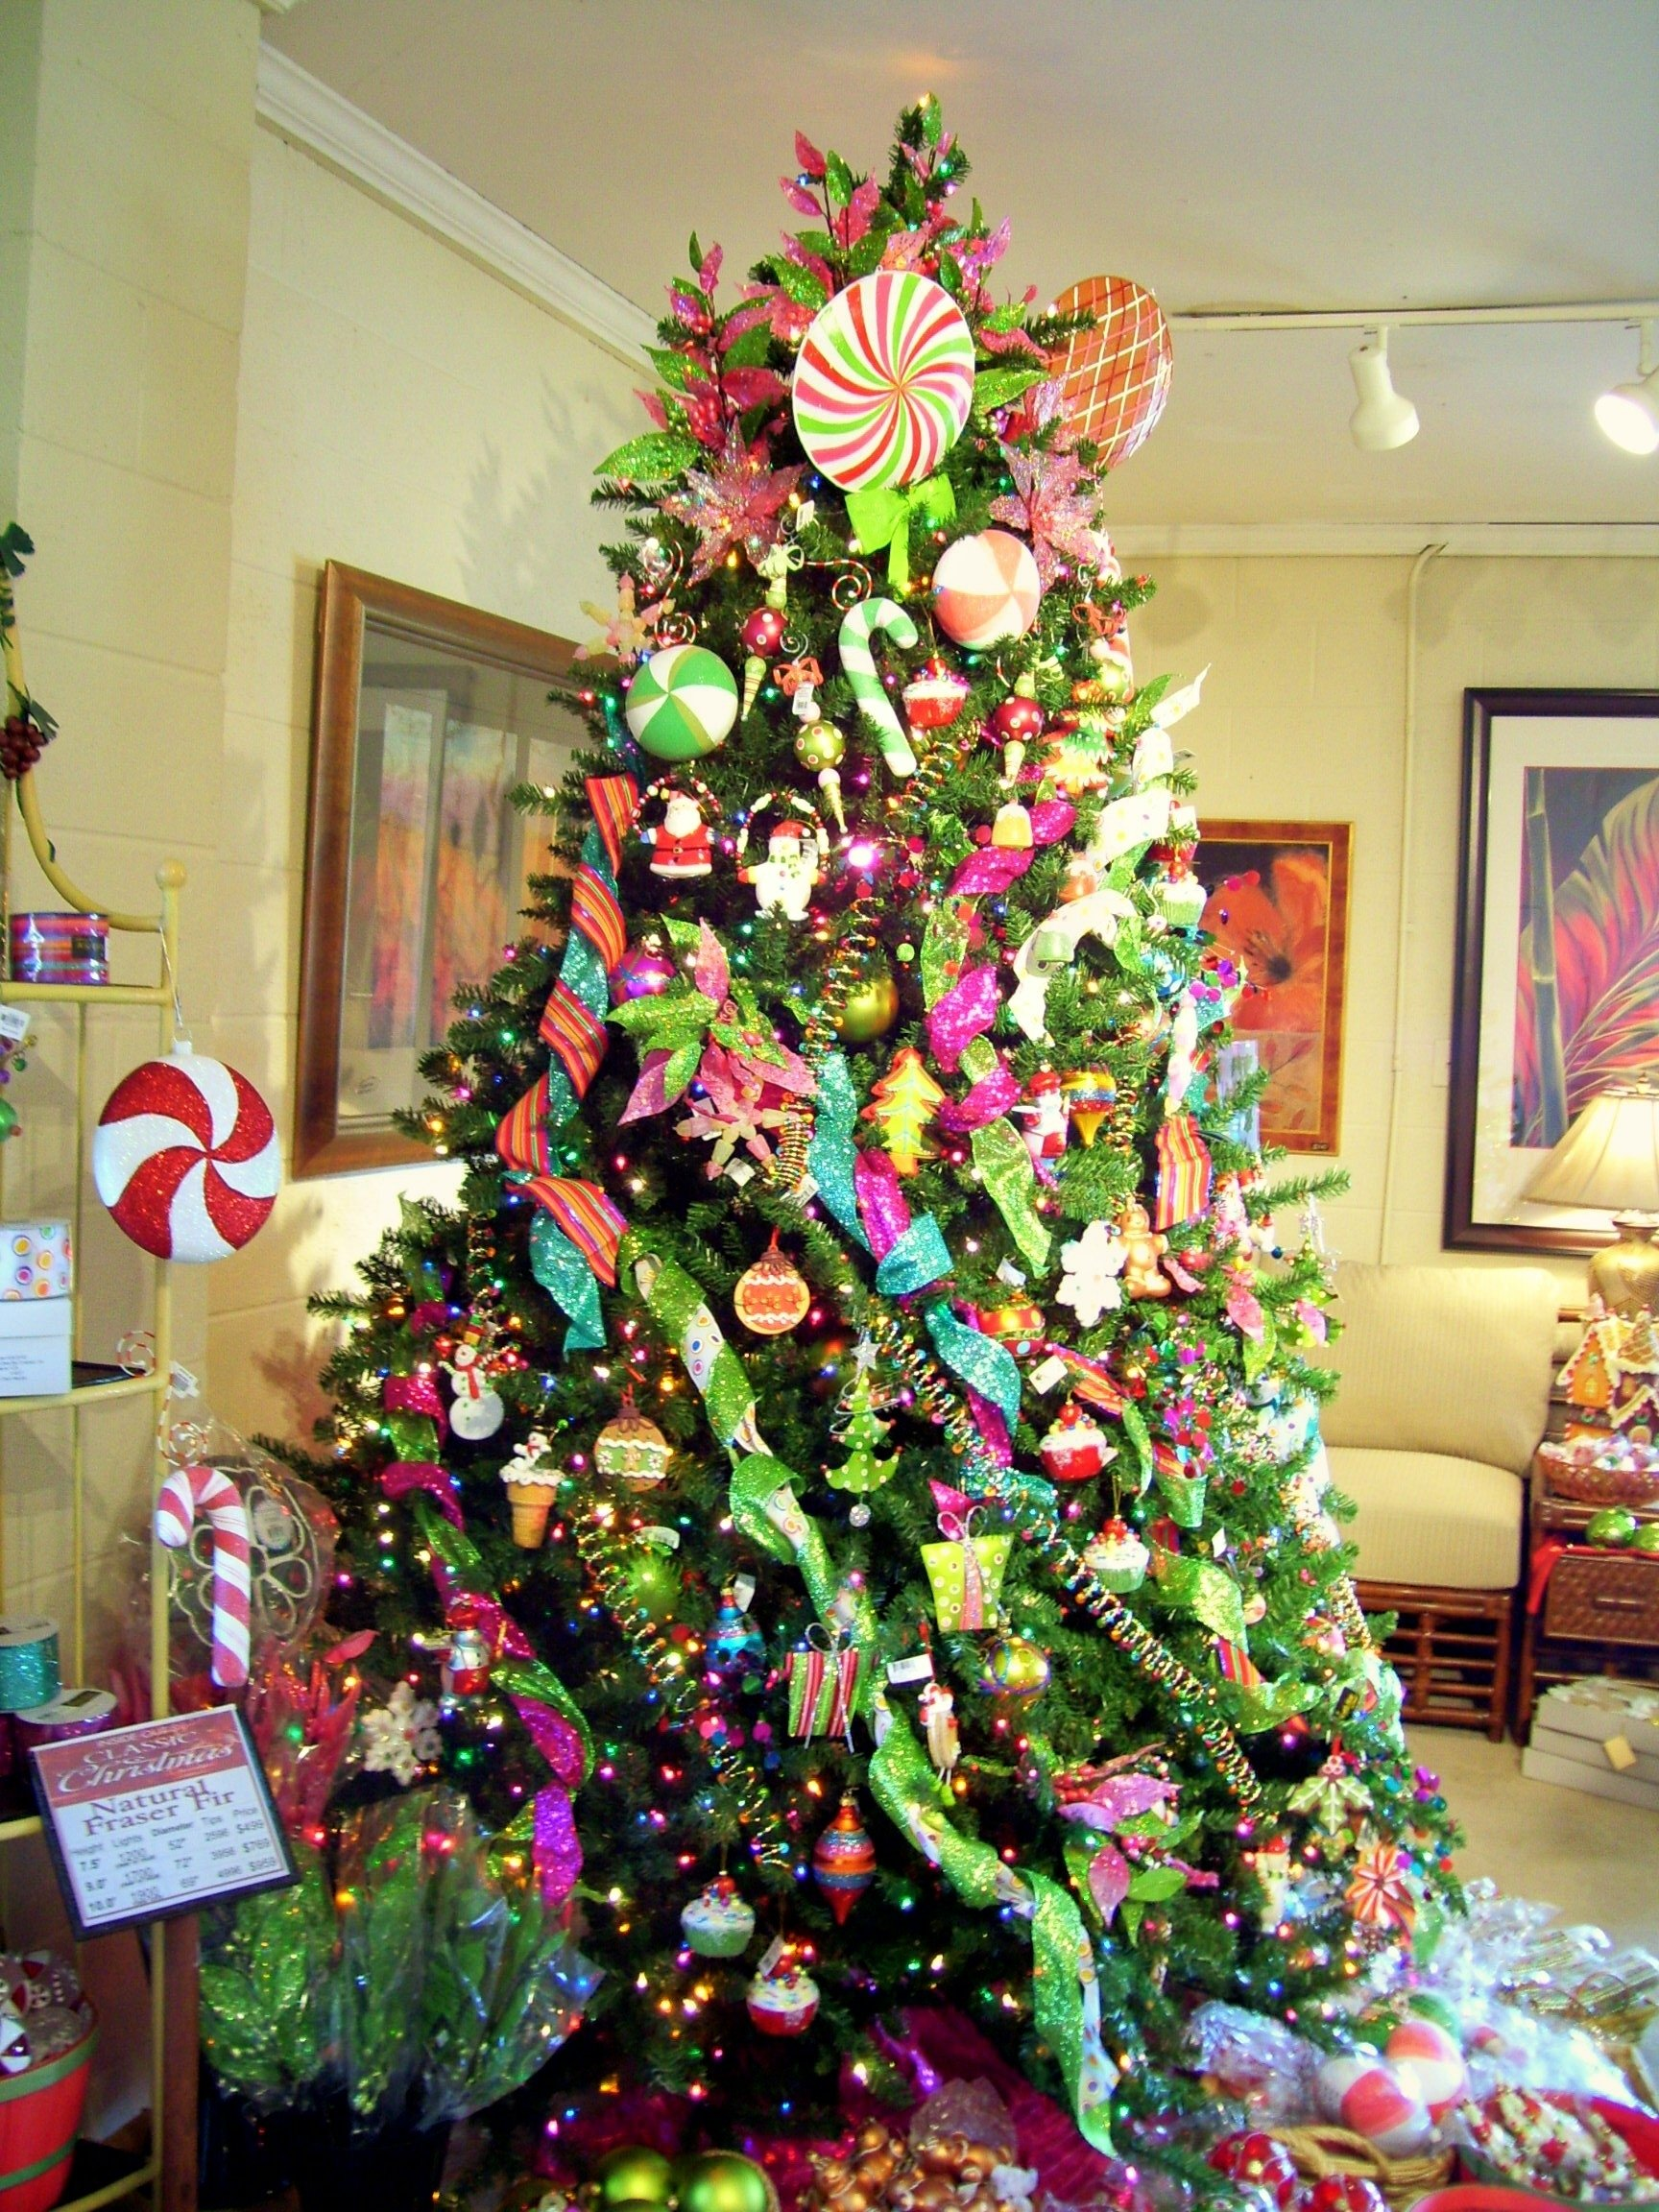 10 Ideal Ideas For Decorating Christmas Trees collection modern christmas tree decorating ideas pictures home 1 2020